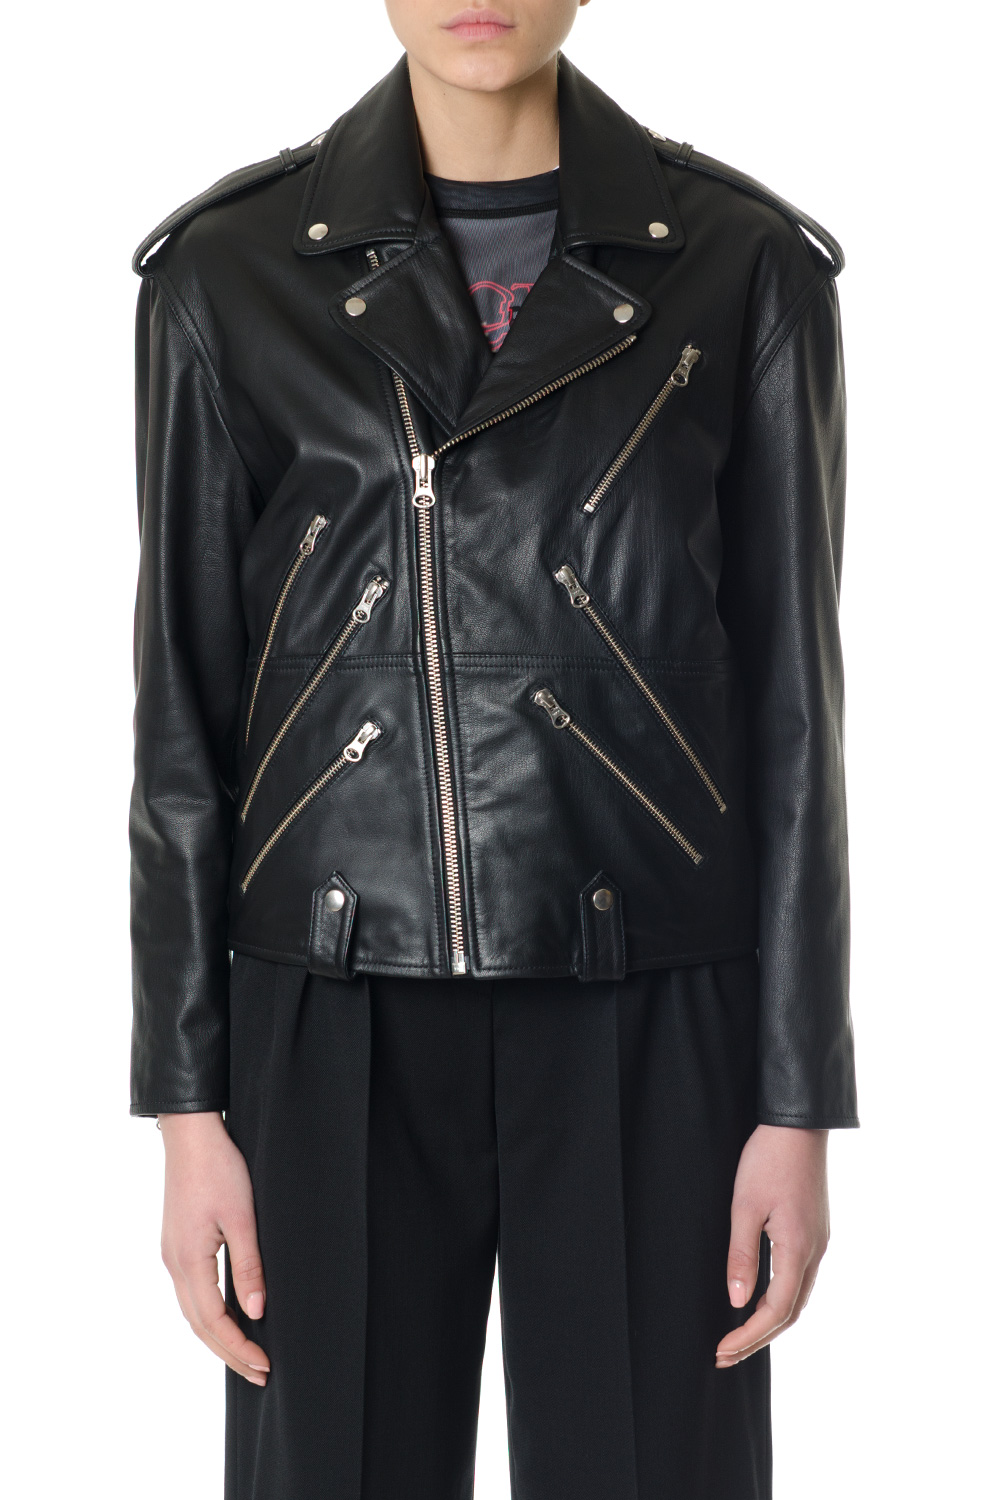 ZIPPED BLACK LEATHER BIKER JACKET ss 2018 - McQ ALEXANDER MCQUEEN -  Boutique Galiano f7c2bca211f